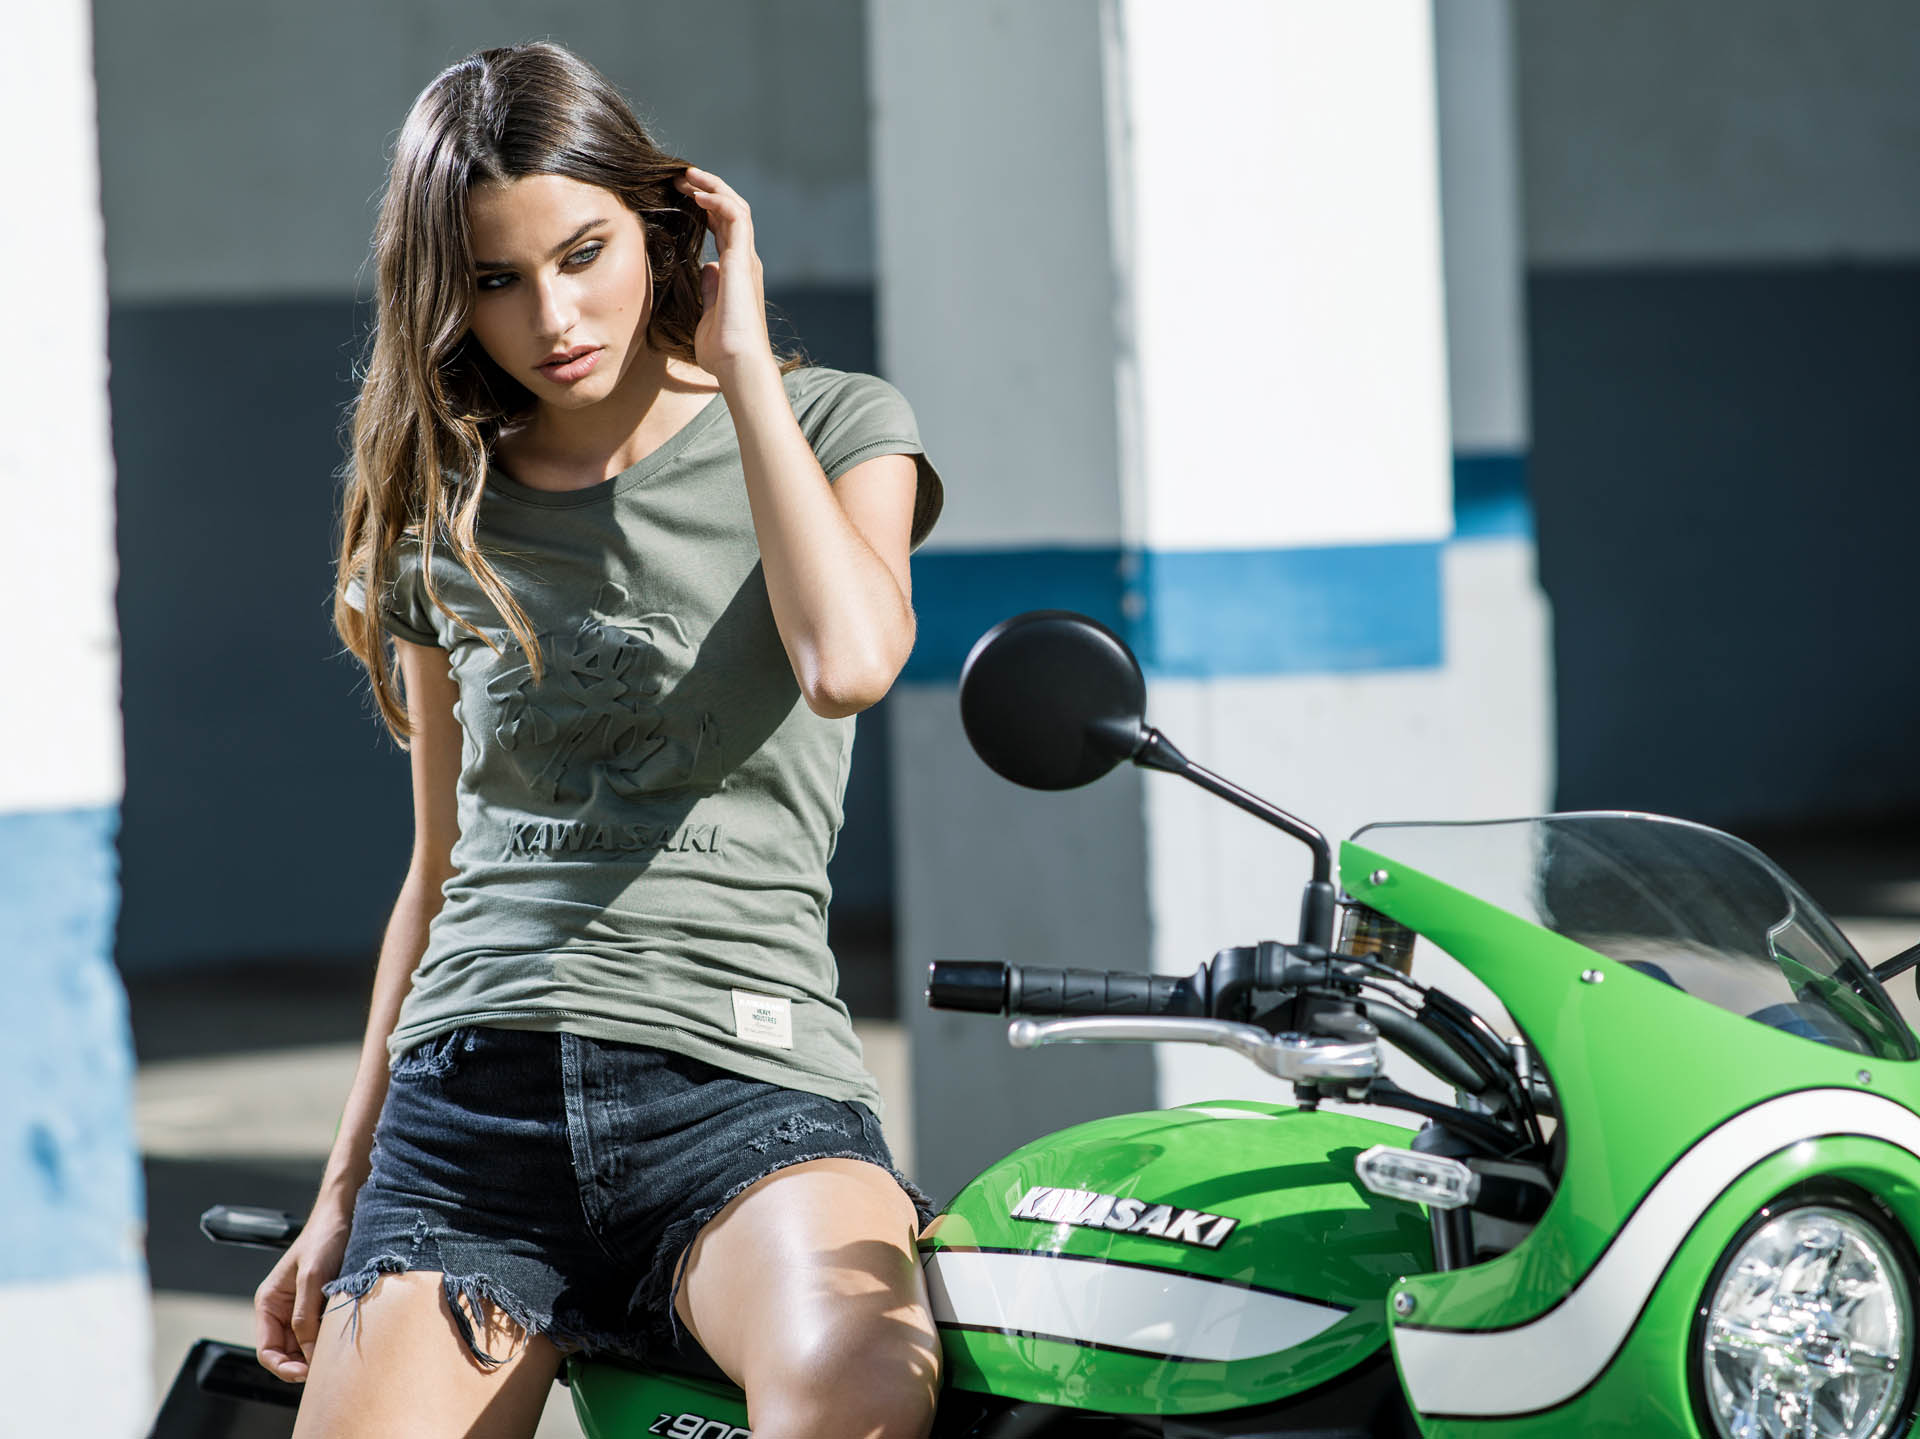 Moto Center Mertens - Lifestyle